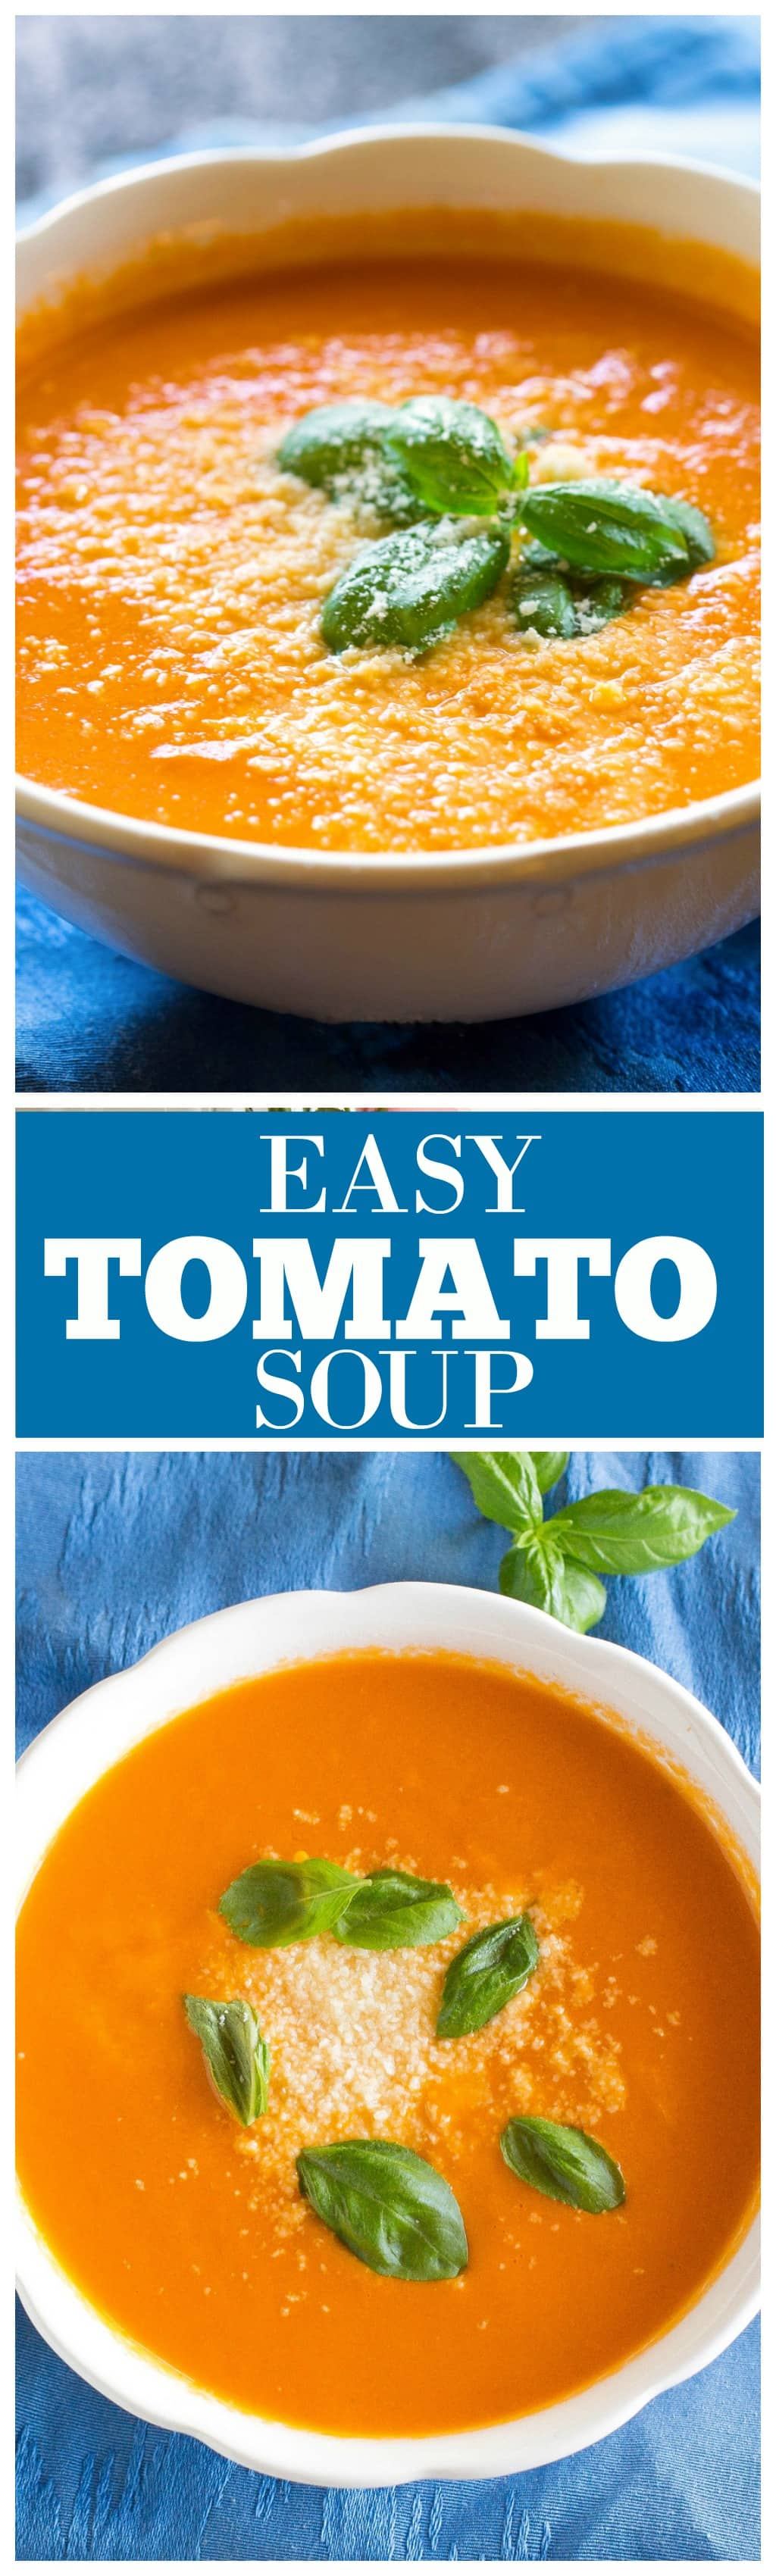 Easy Tomato Soup - only a couple of simple ingredients and tastes so comforting! the-girl-who-ate-everything.com